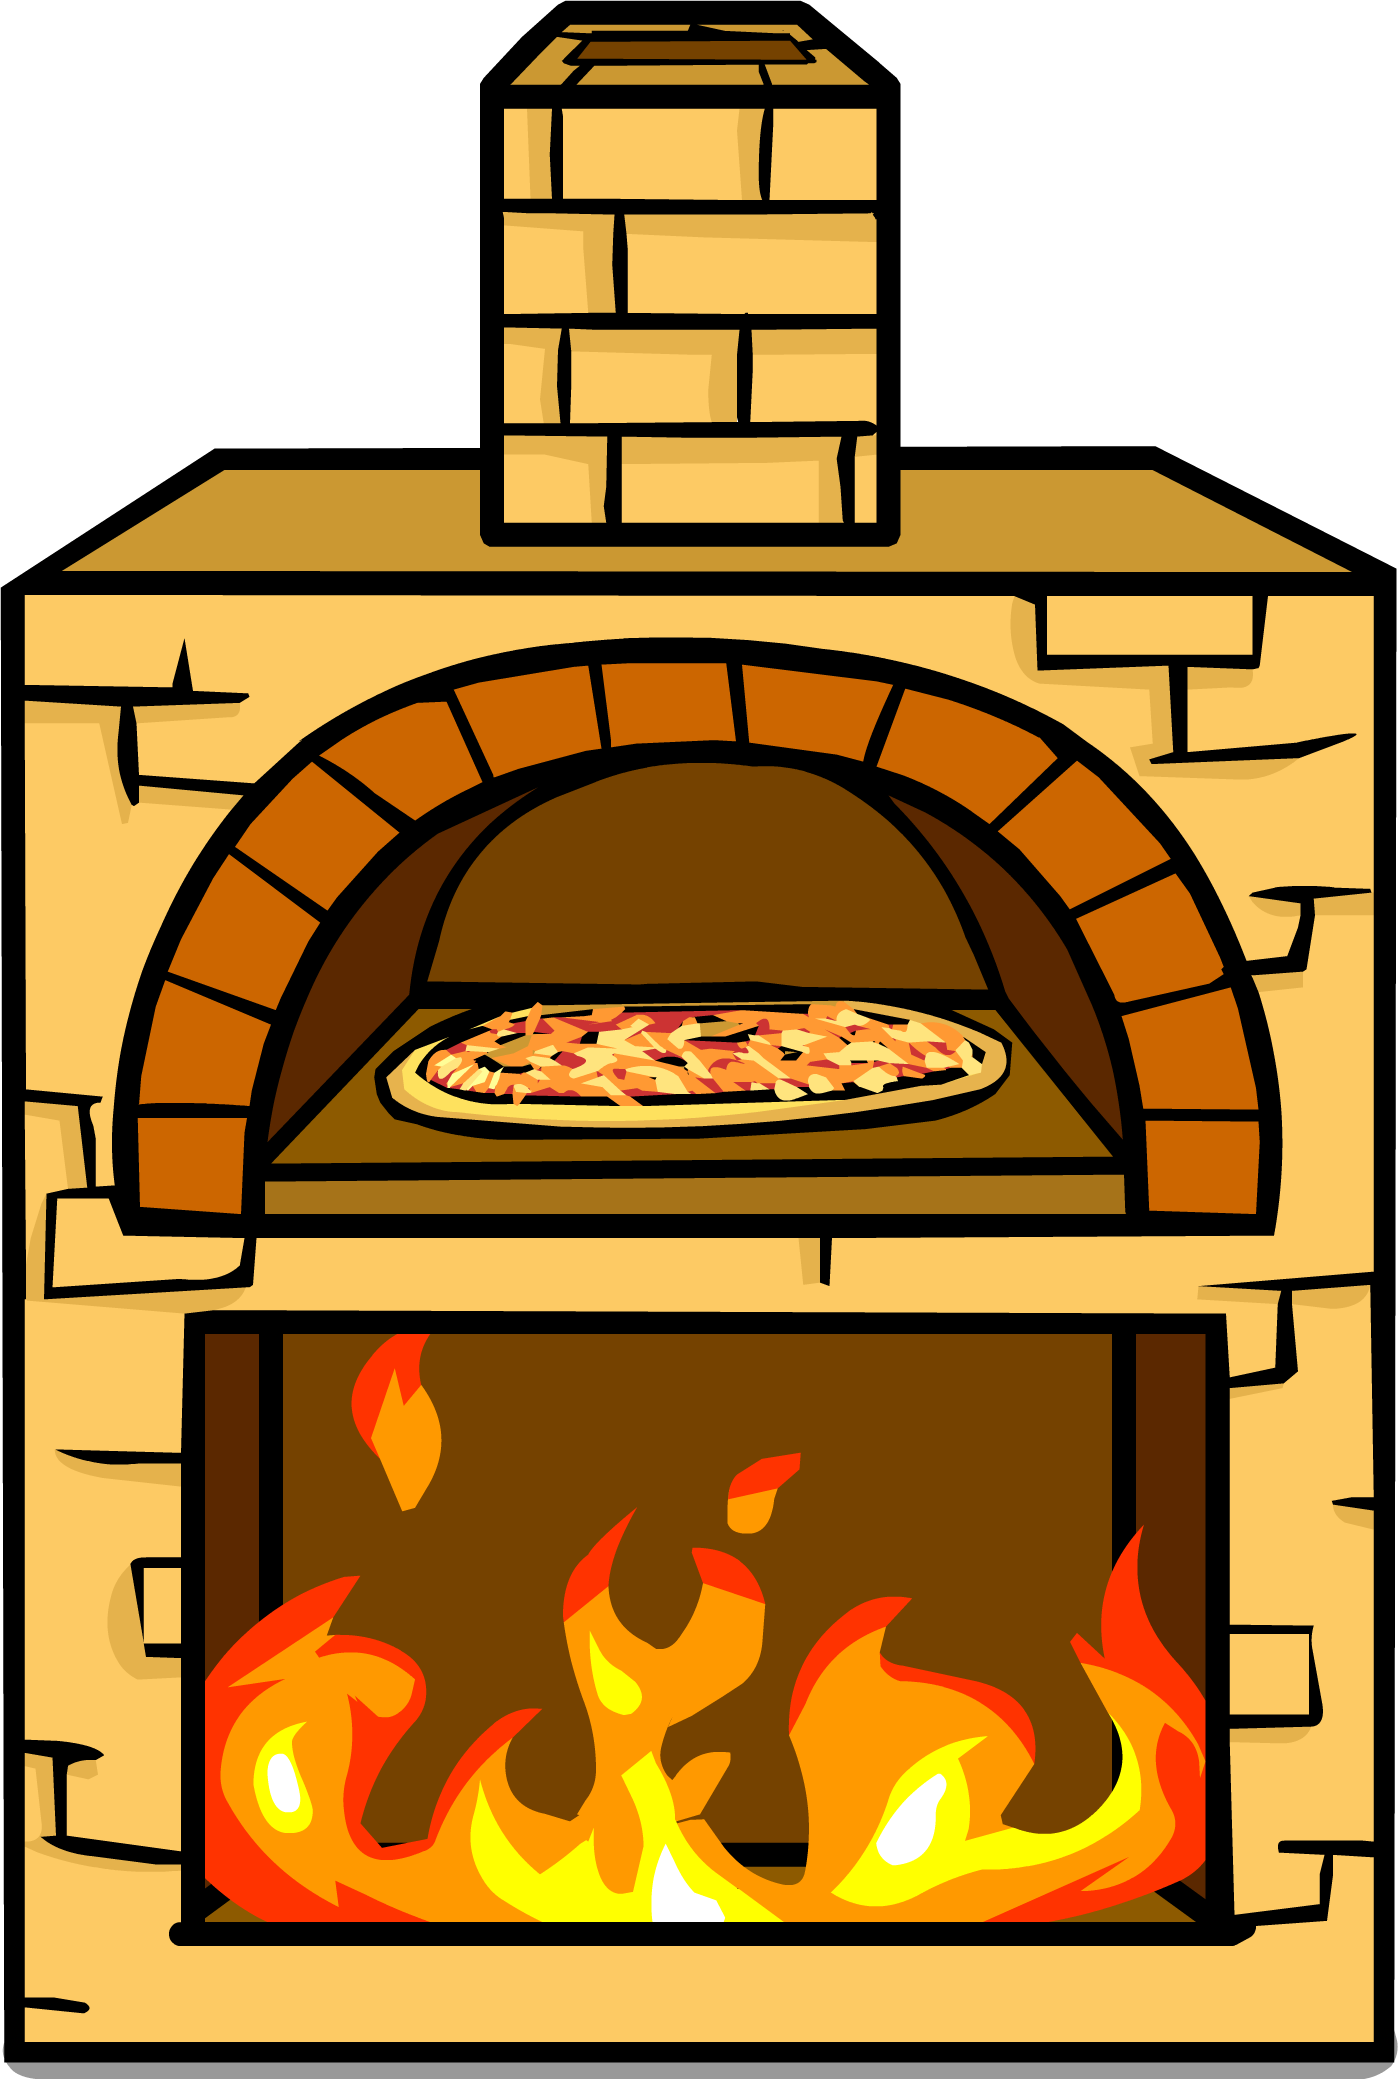 Club clipart pizza. Image oven sprite png